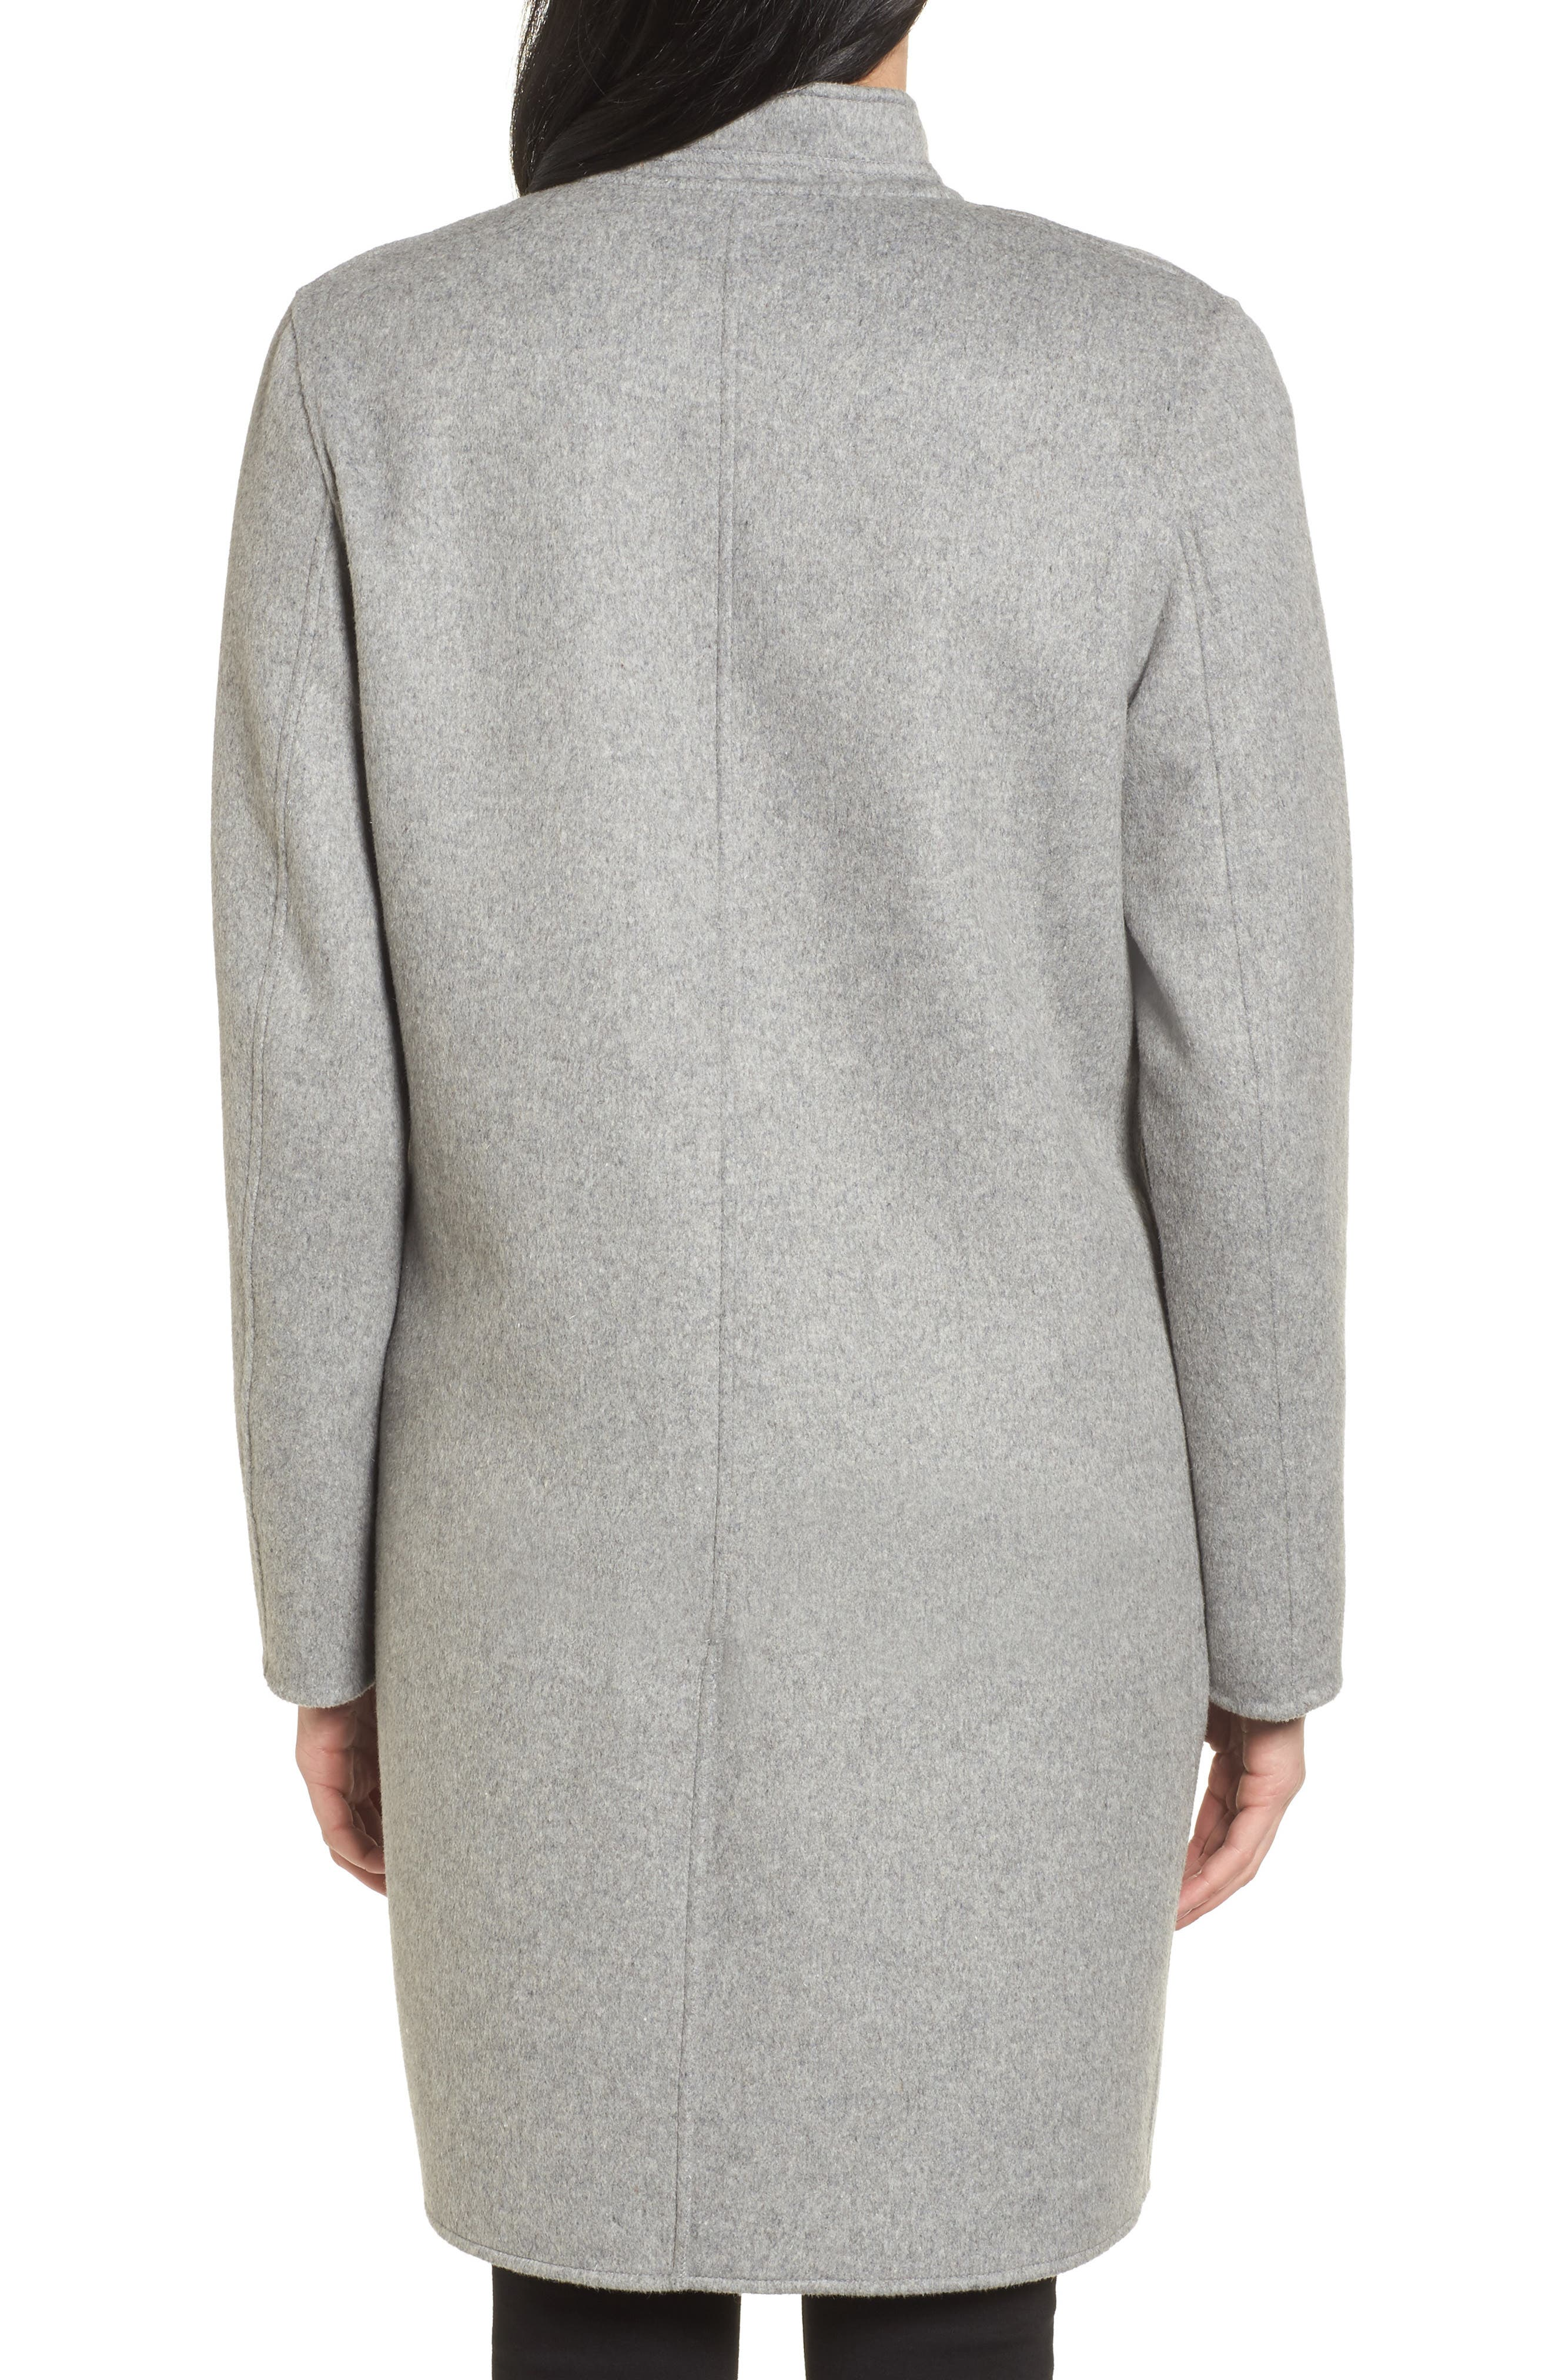 Double Face Wool Blend Coat,                             Alternate thumbnail 2, color,                             Light Grey